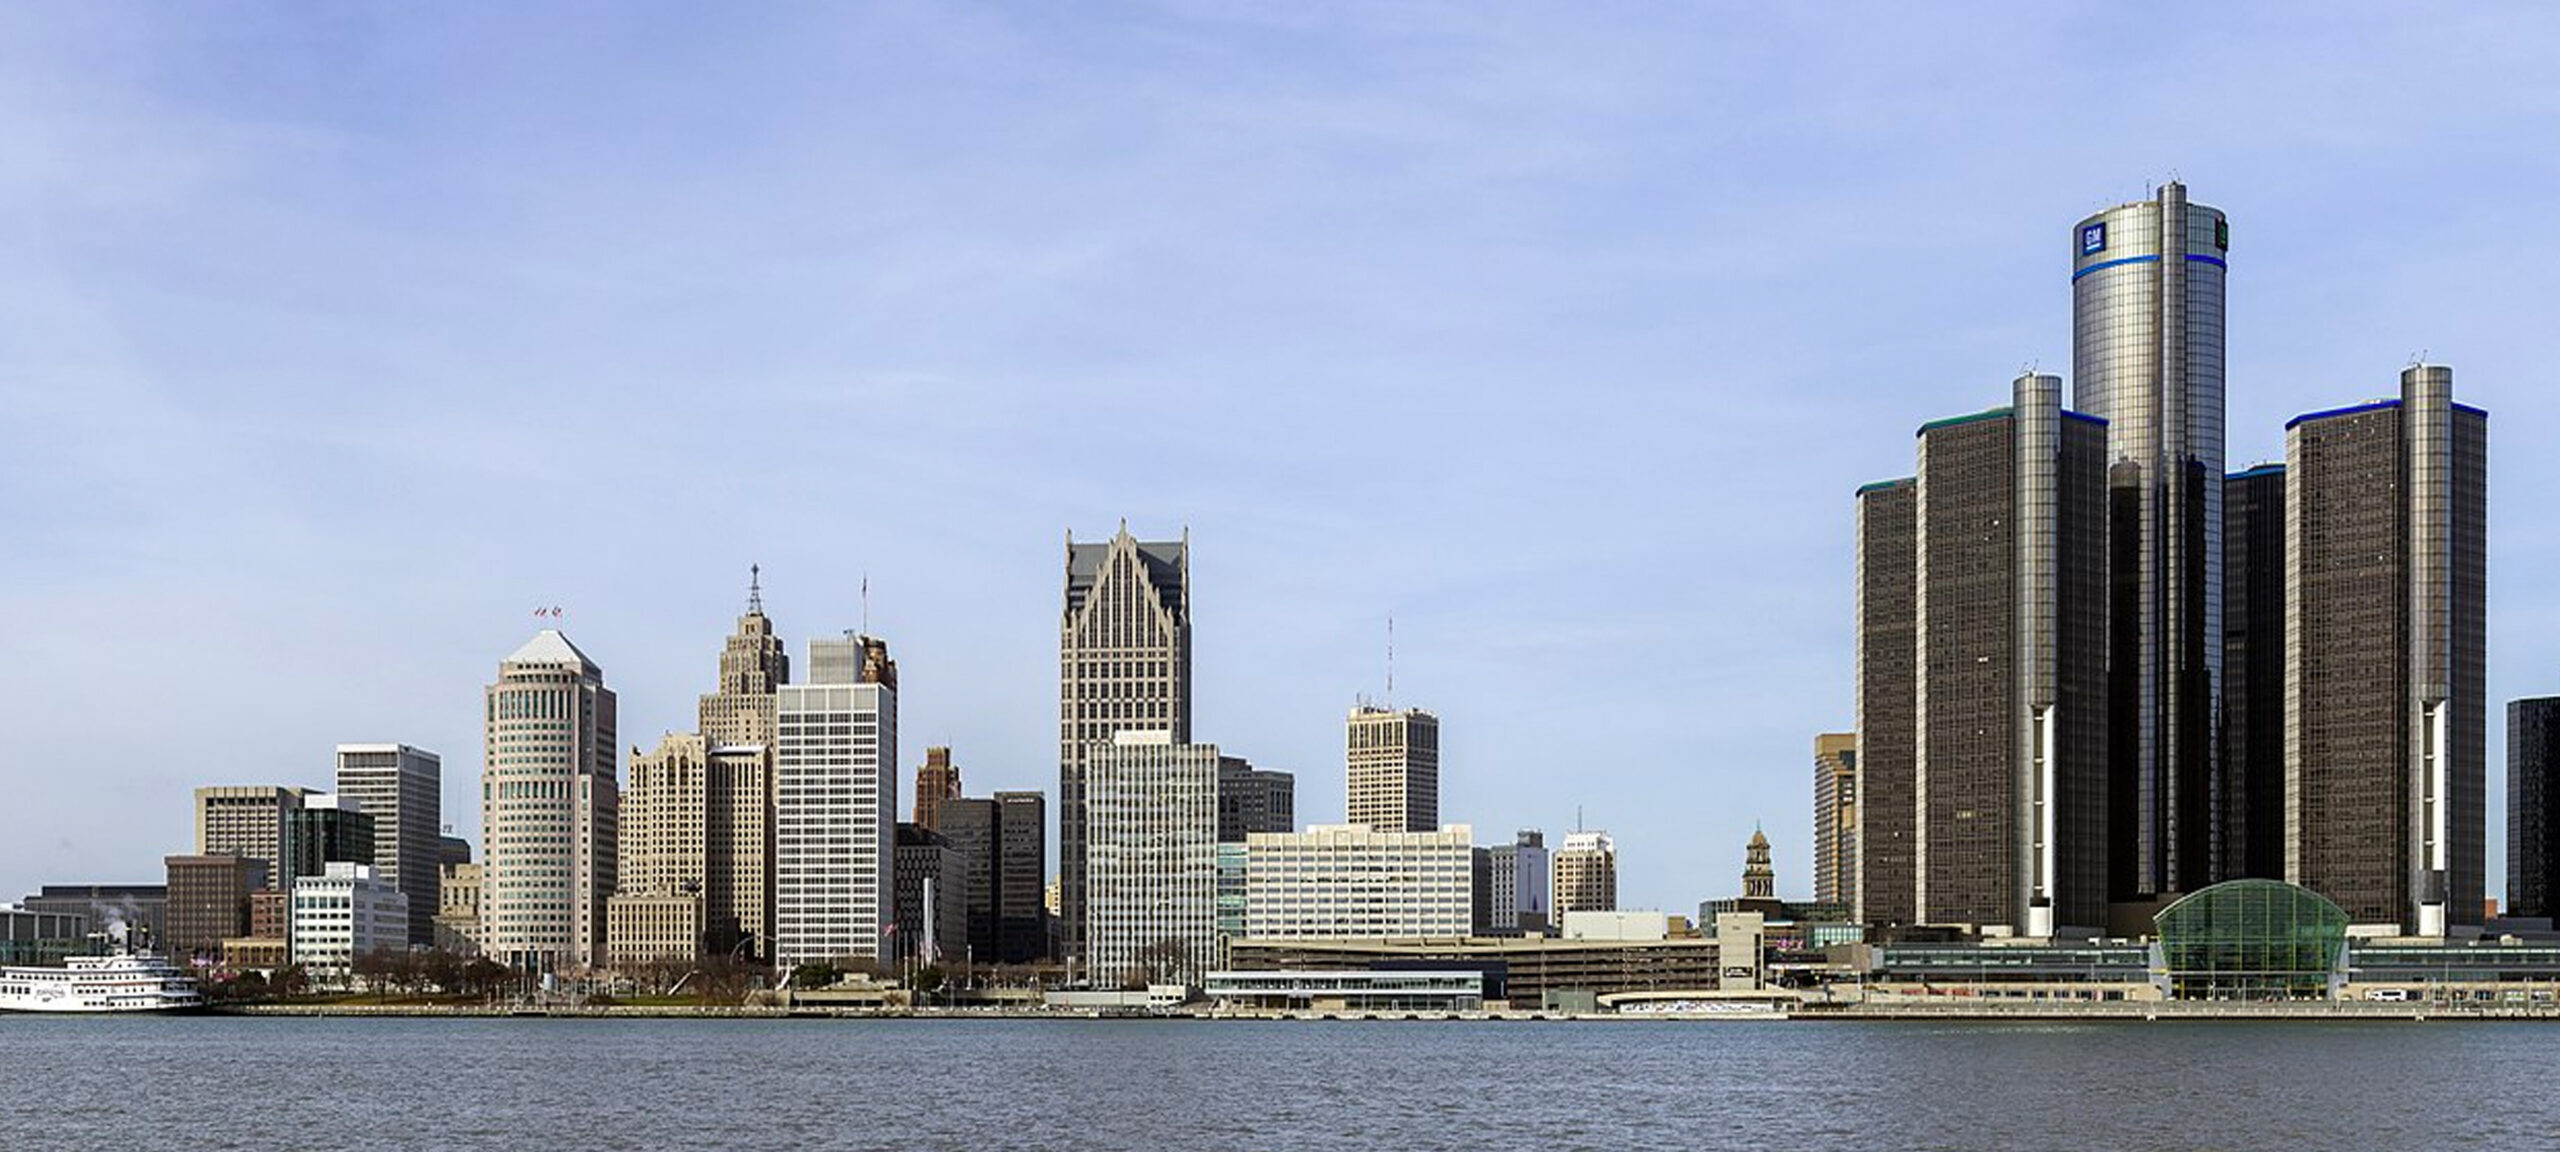 Detroit City landscape featuring the Search Results Web results Renaissance Center